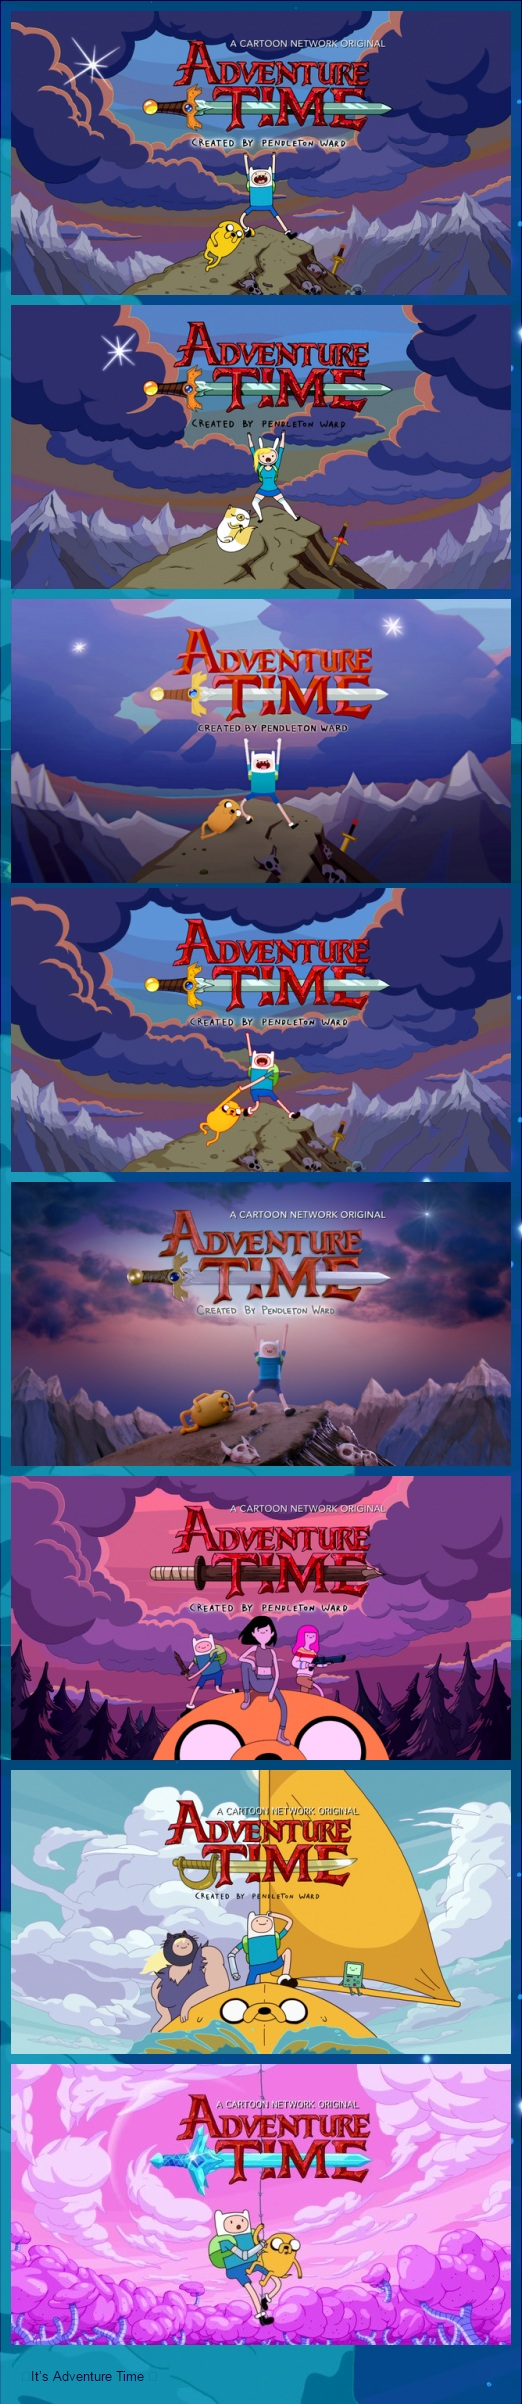 Adventure Time over the years | Adventure Time | Know Your Meme